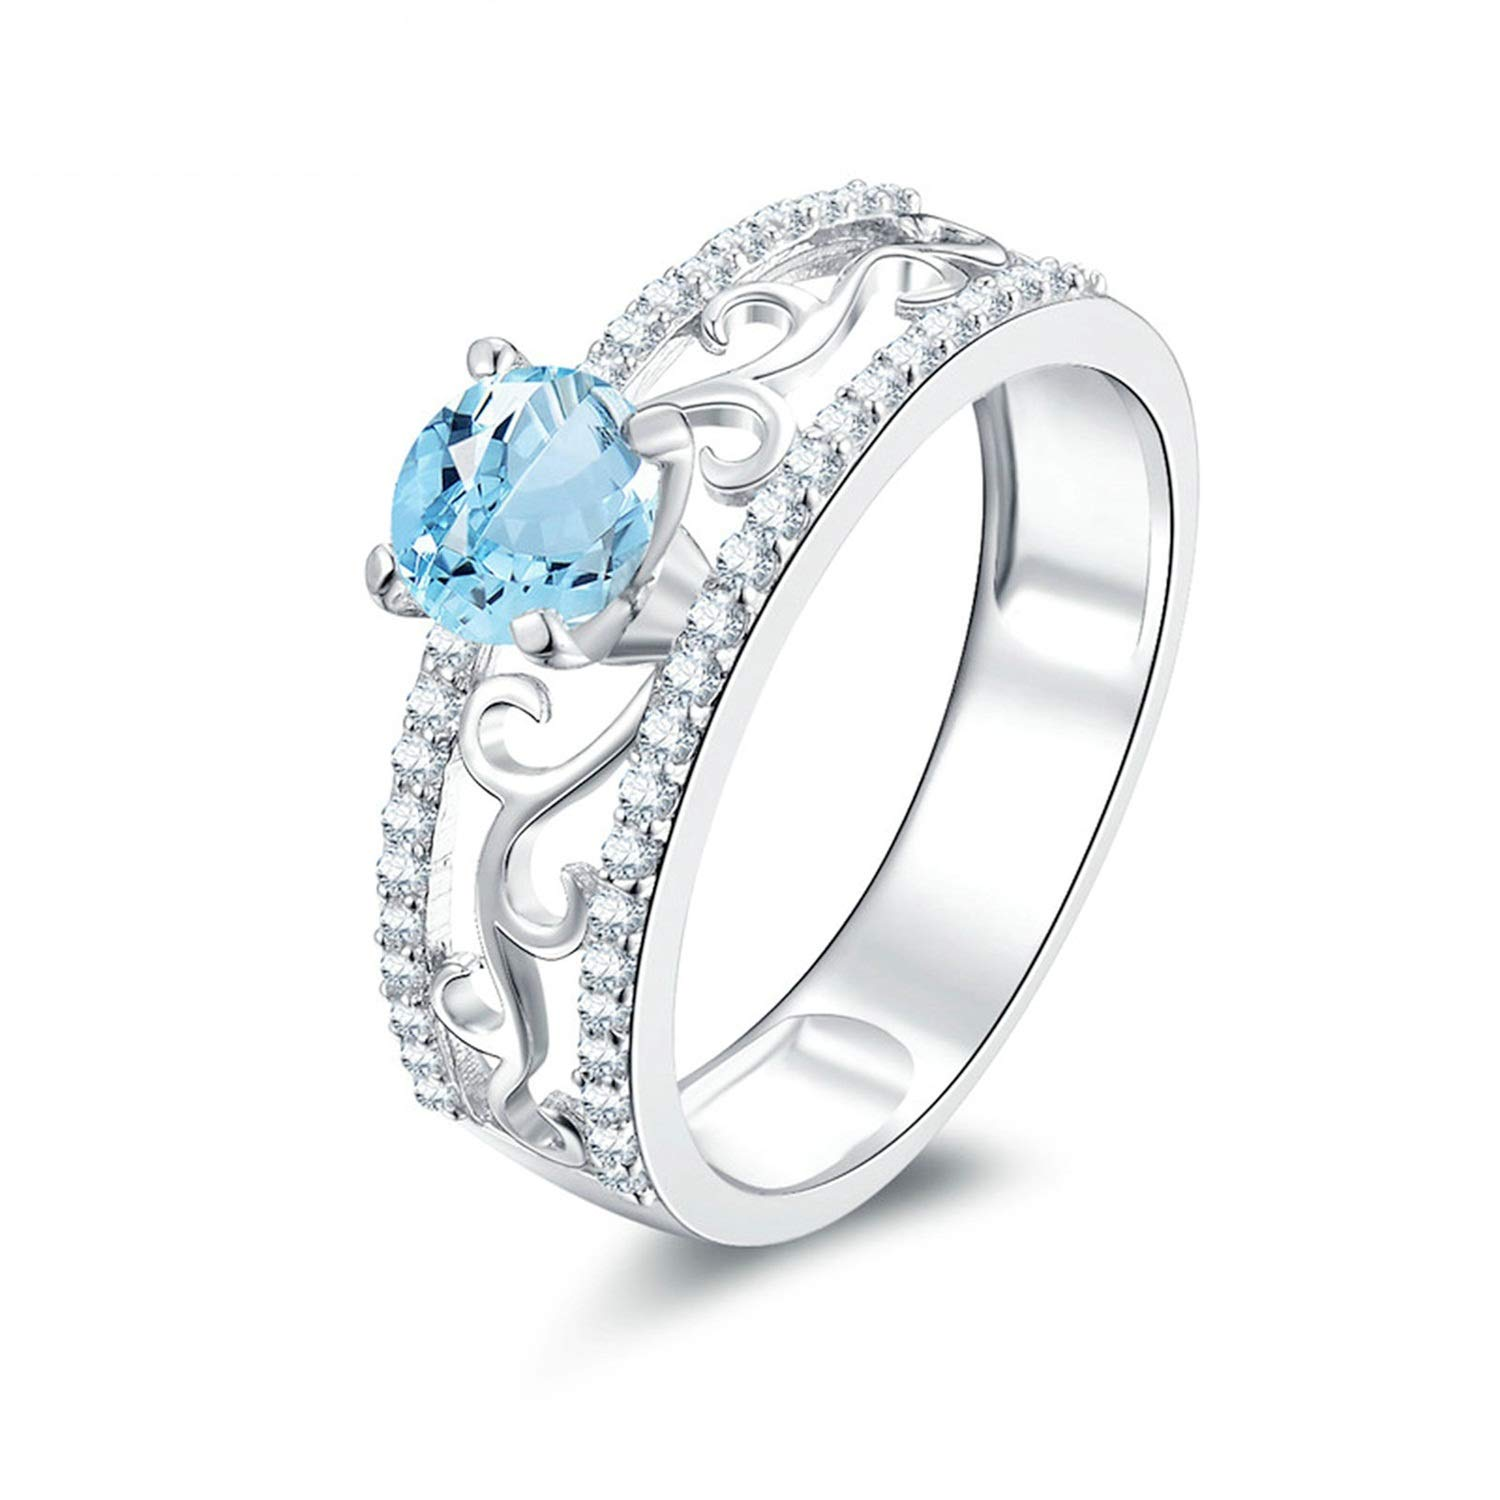 AMDXD Jewelry 925 Sterling Silver Anniversary Rings Women Blue Round Cut Topaz Round Rings